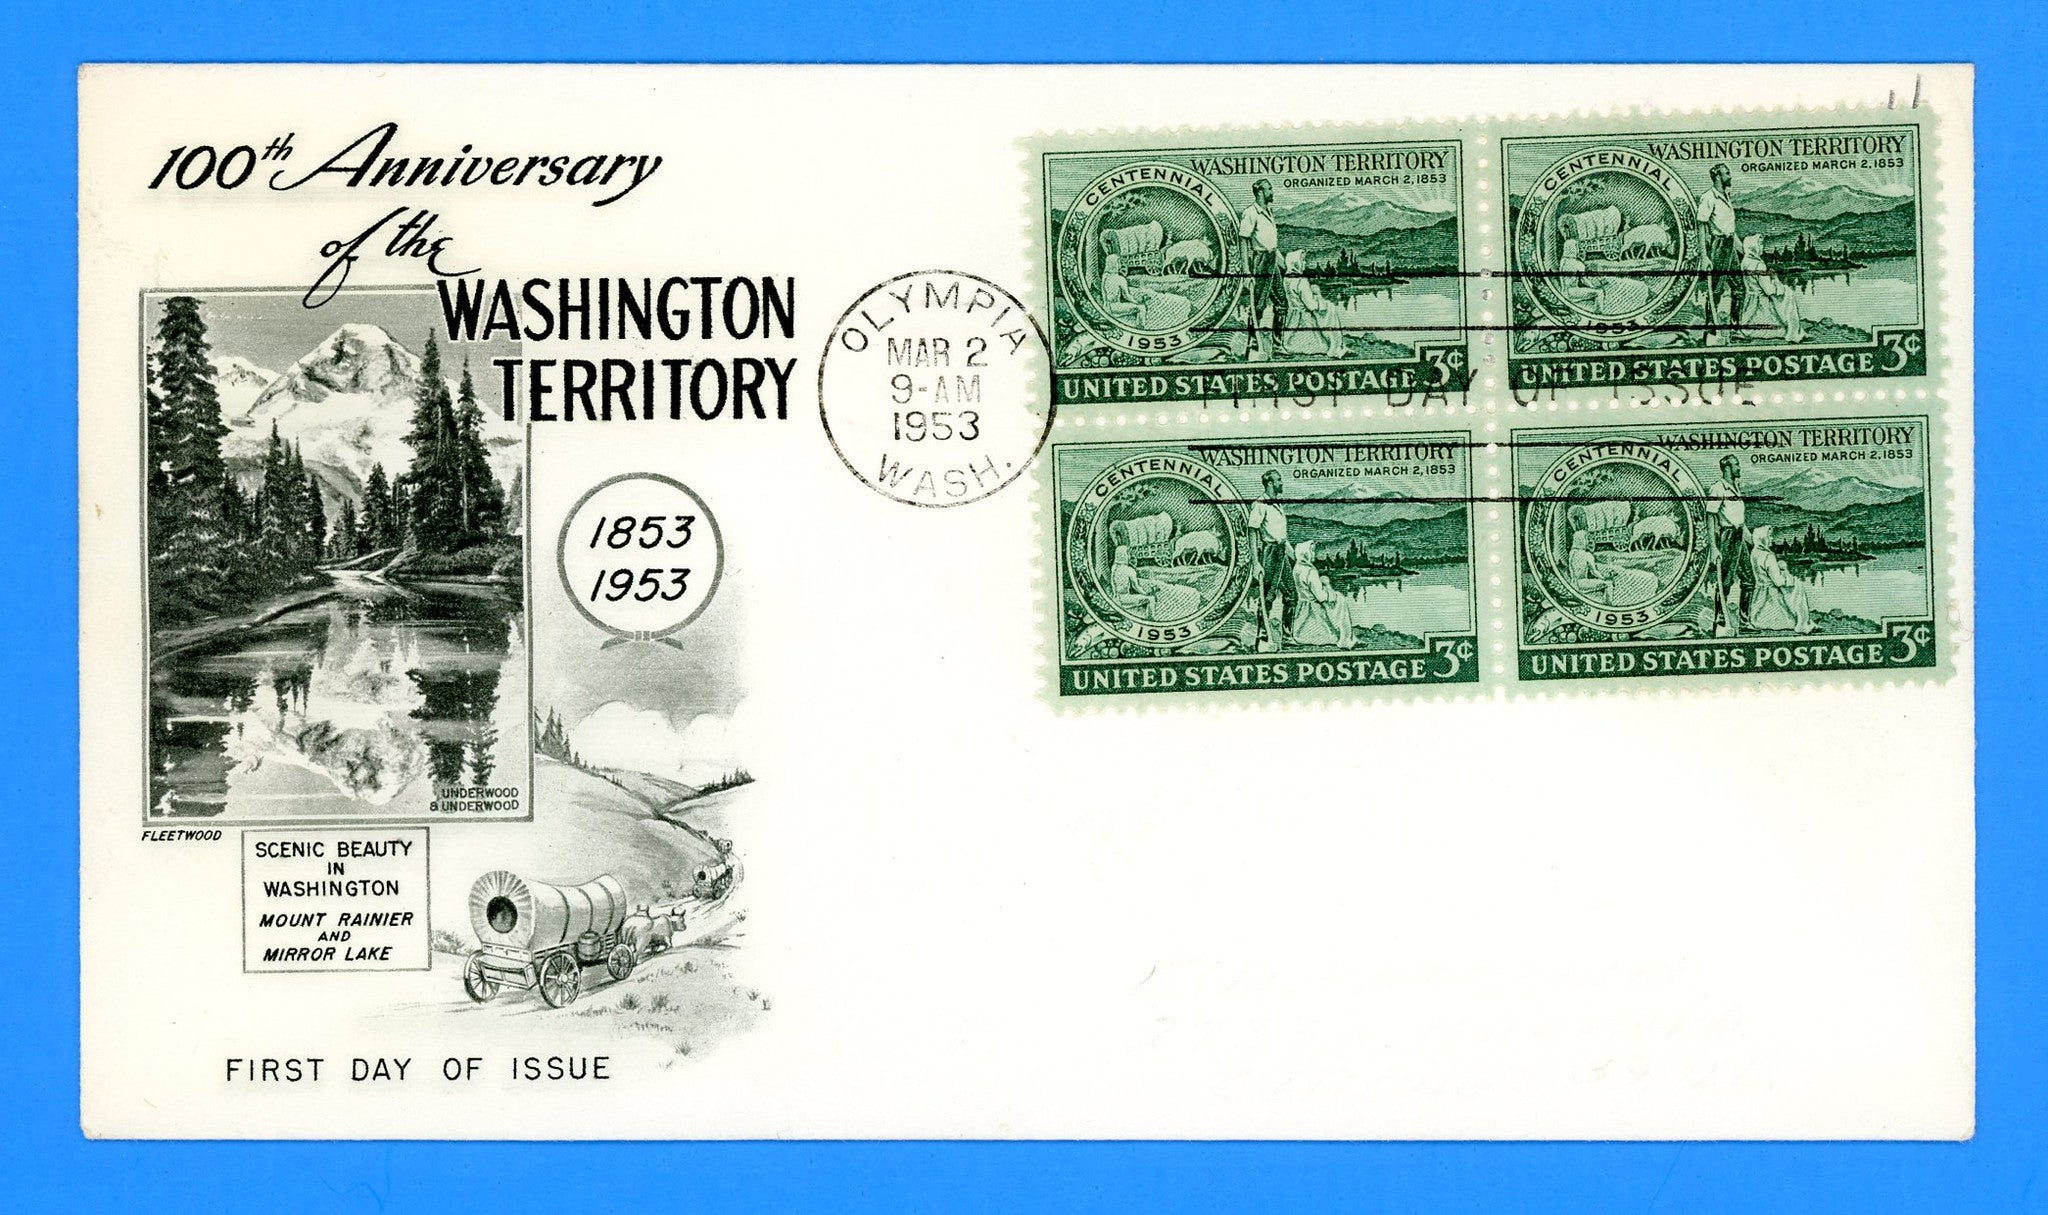 Scott 1019 Washington Territory First Day Cover by Fleetwood